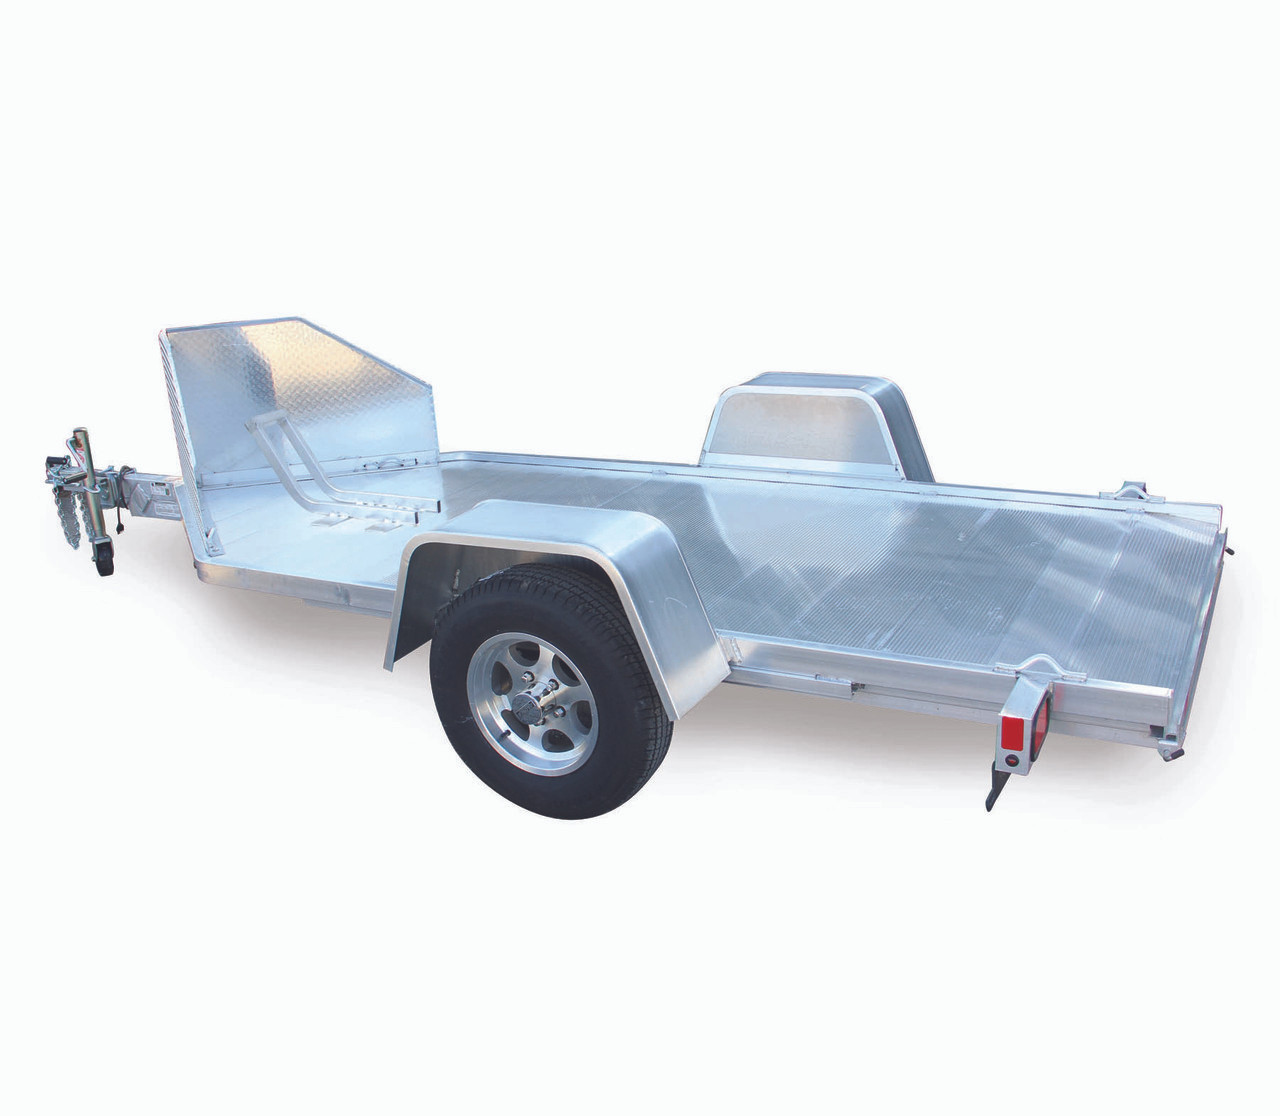 "ALMC10 --- 51"" x 10.5' Aluminum Motorcycle Trailer with Ramp Gate"